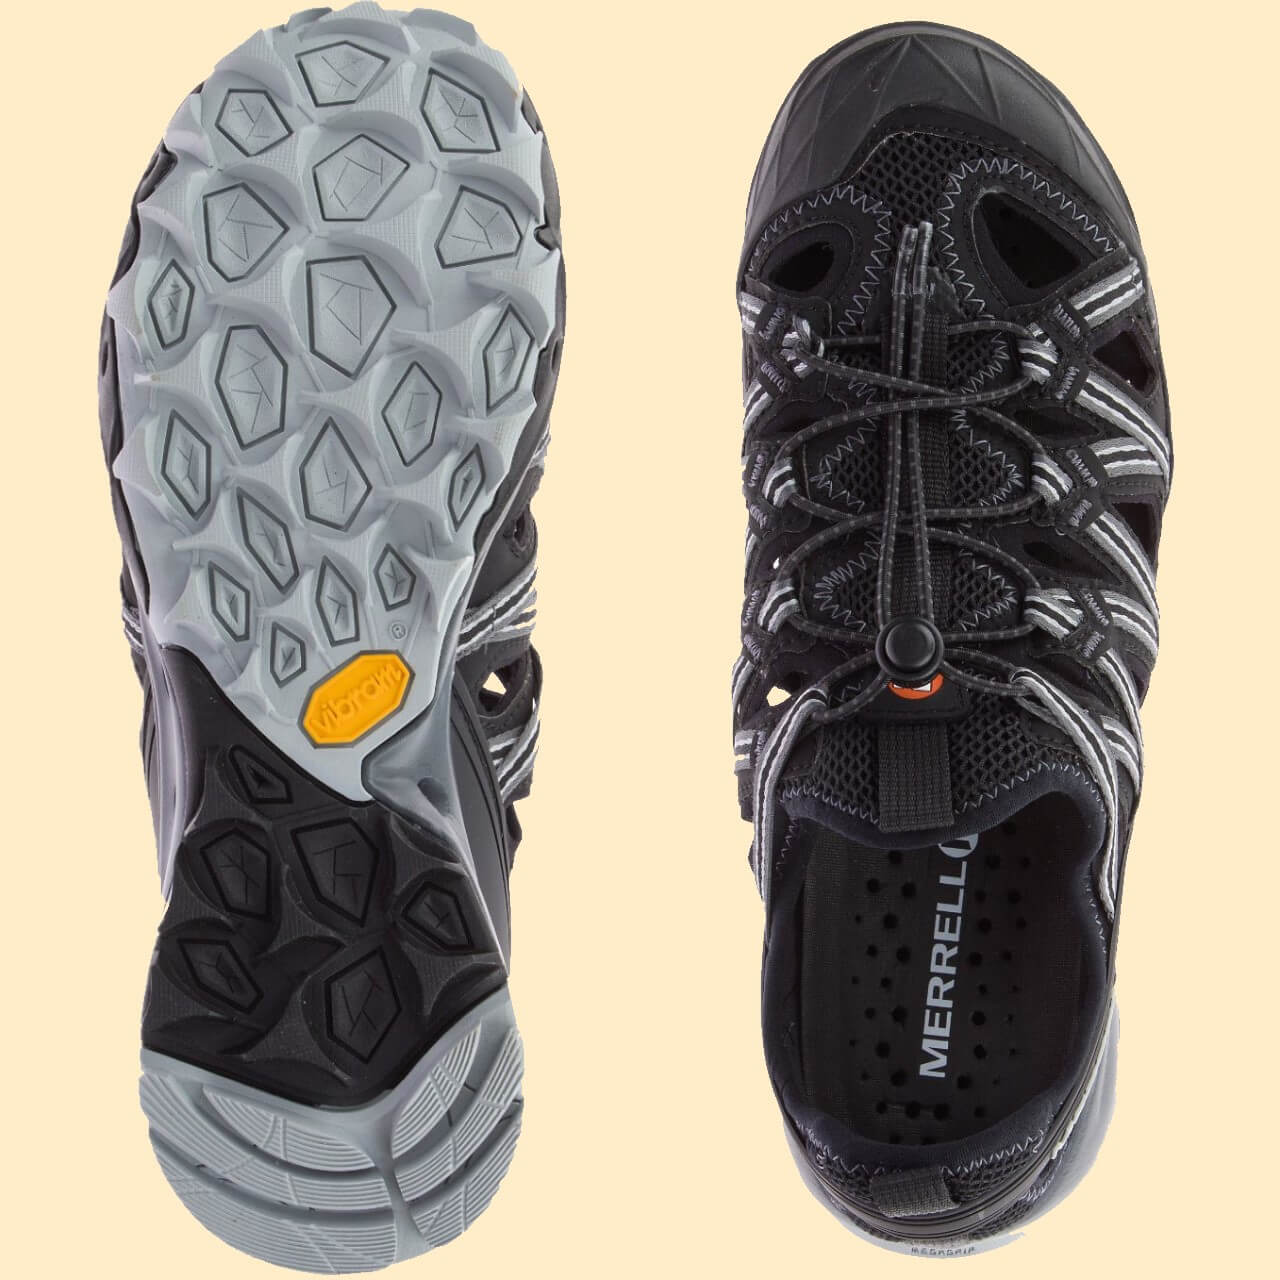 Side by side view of the lacing system and the Vibram outsole of Merrell water shandal